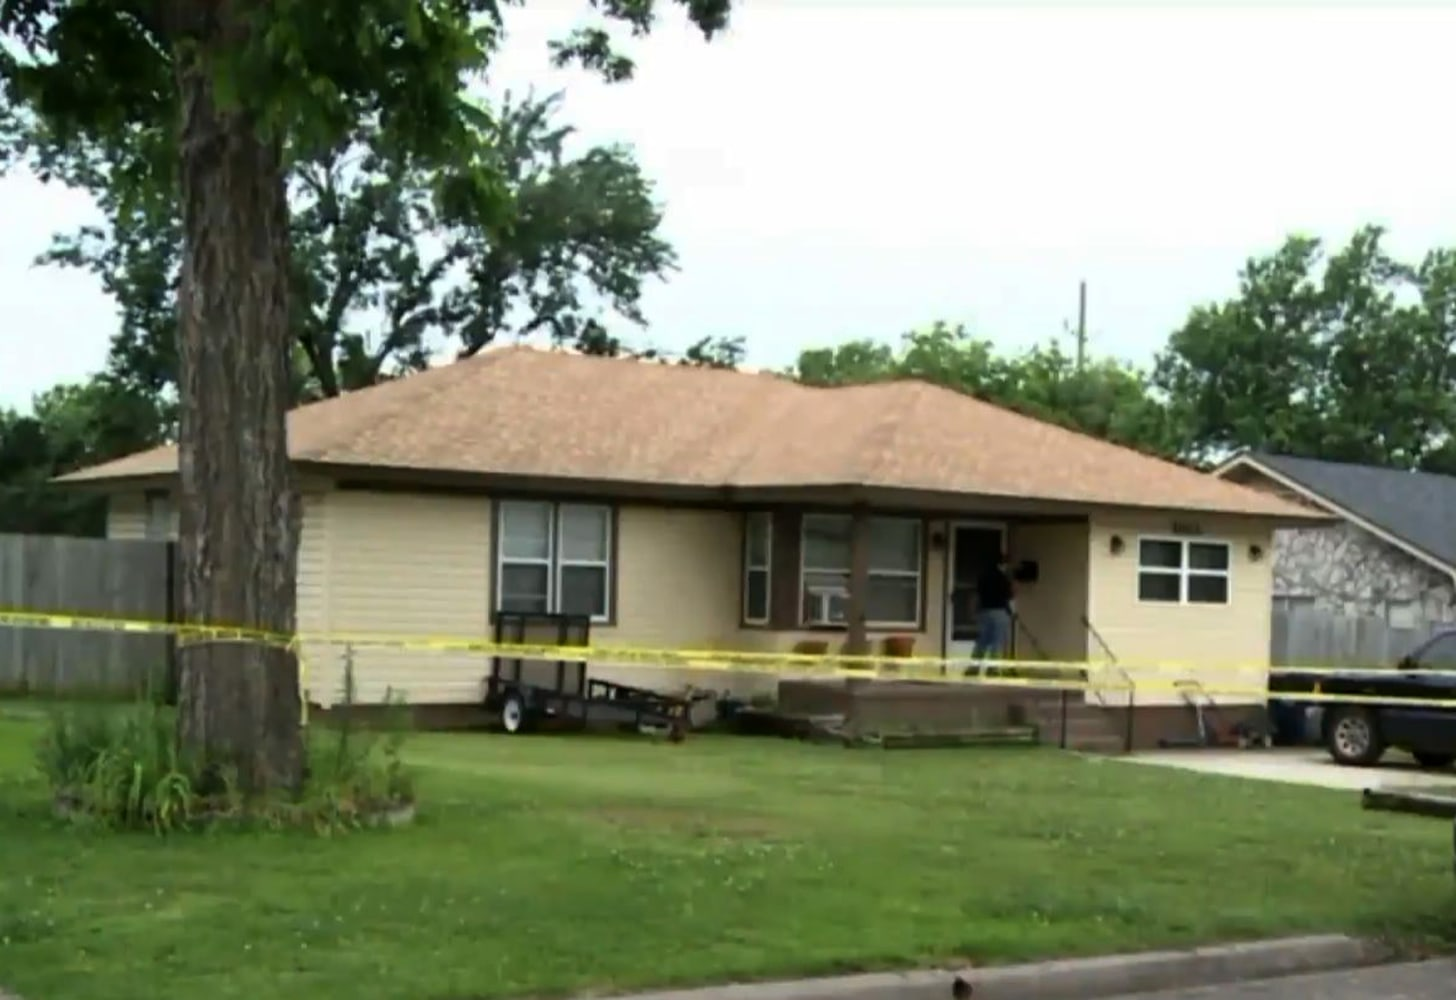 Oklahoma father, trying to drown twin babies, shot by neighbor, police say